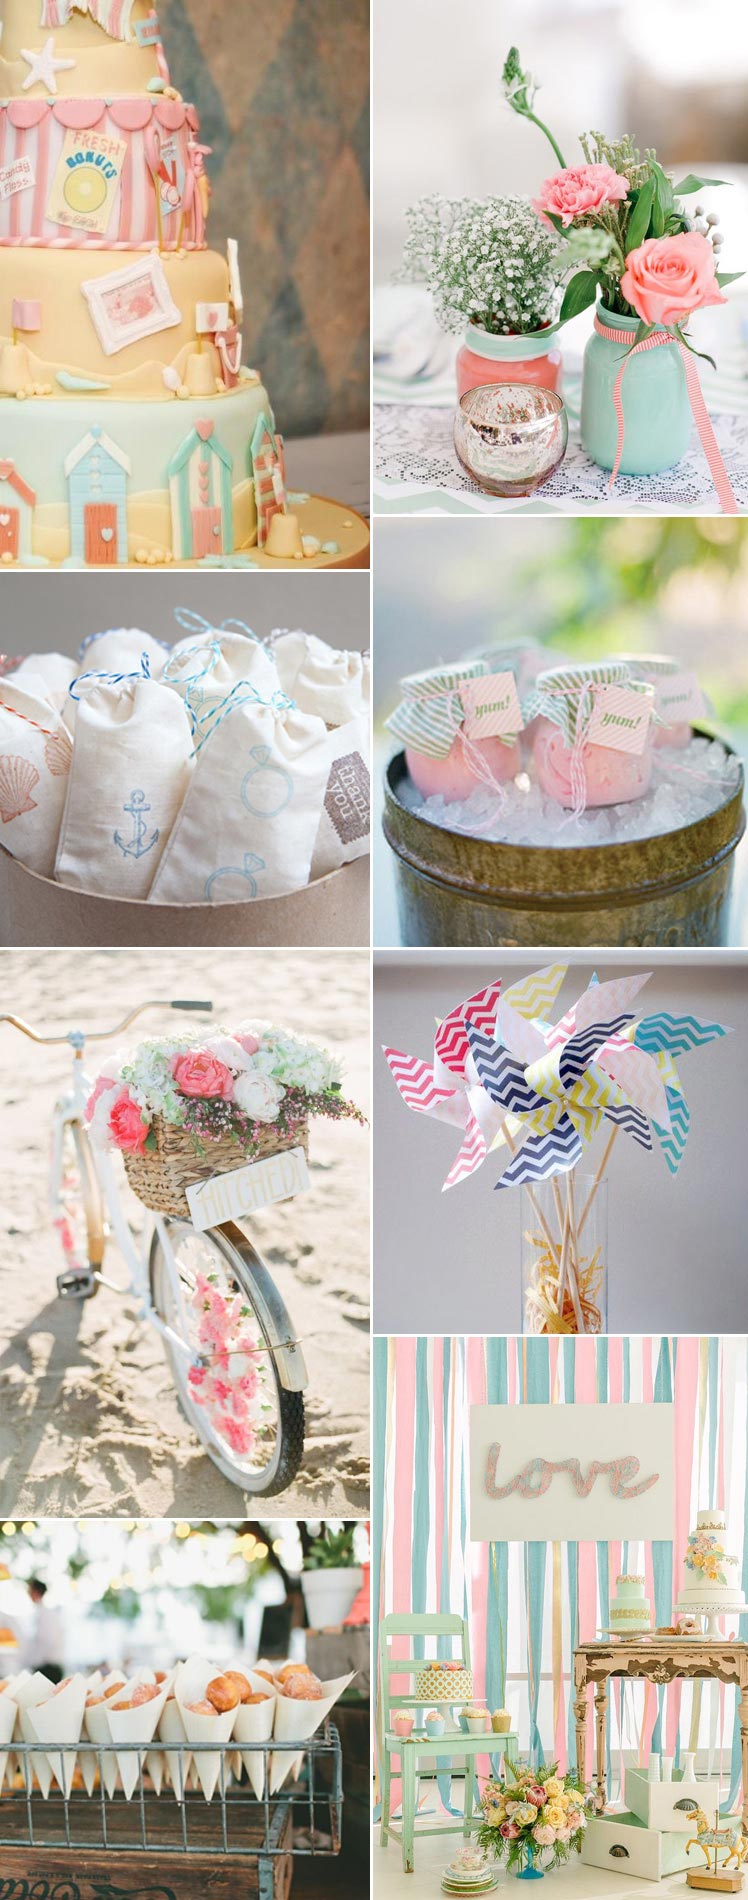 gorgeous beside the sea inspiration for a wedding theme